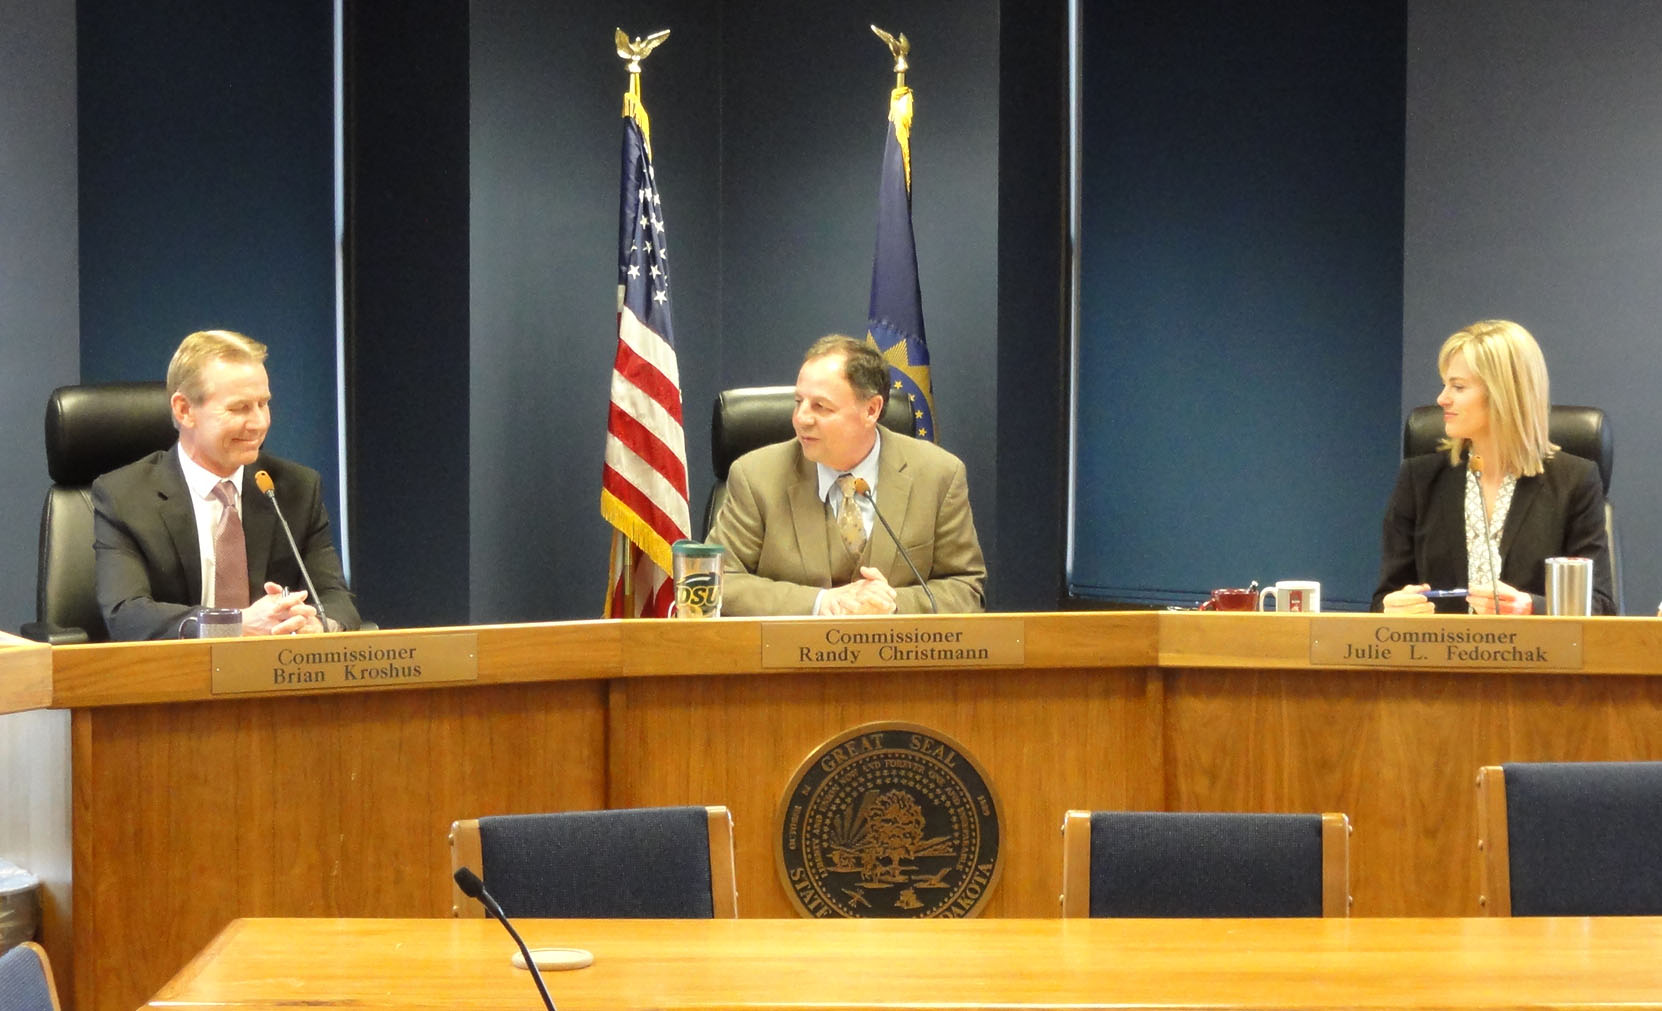 PSC Welcomes Commissioner Brian Kroshus